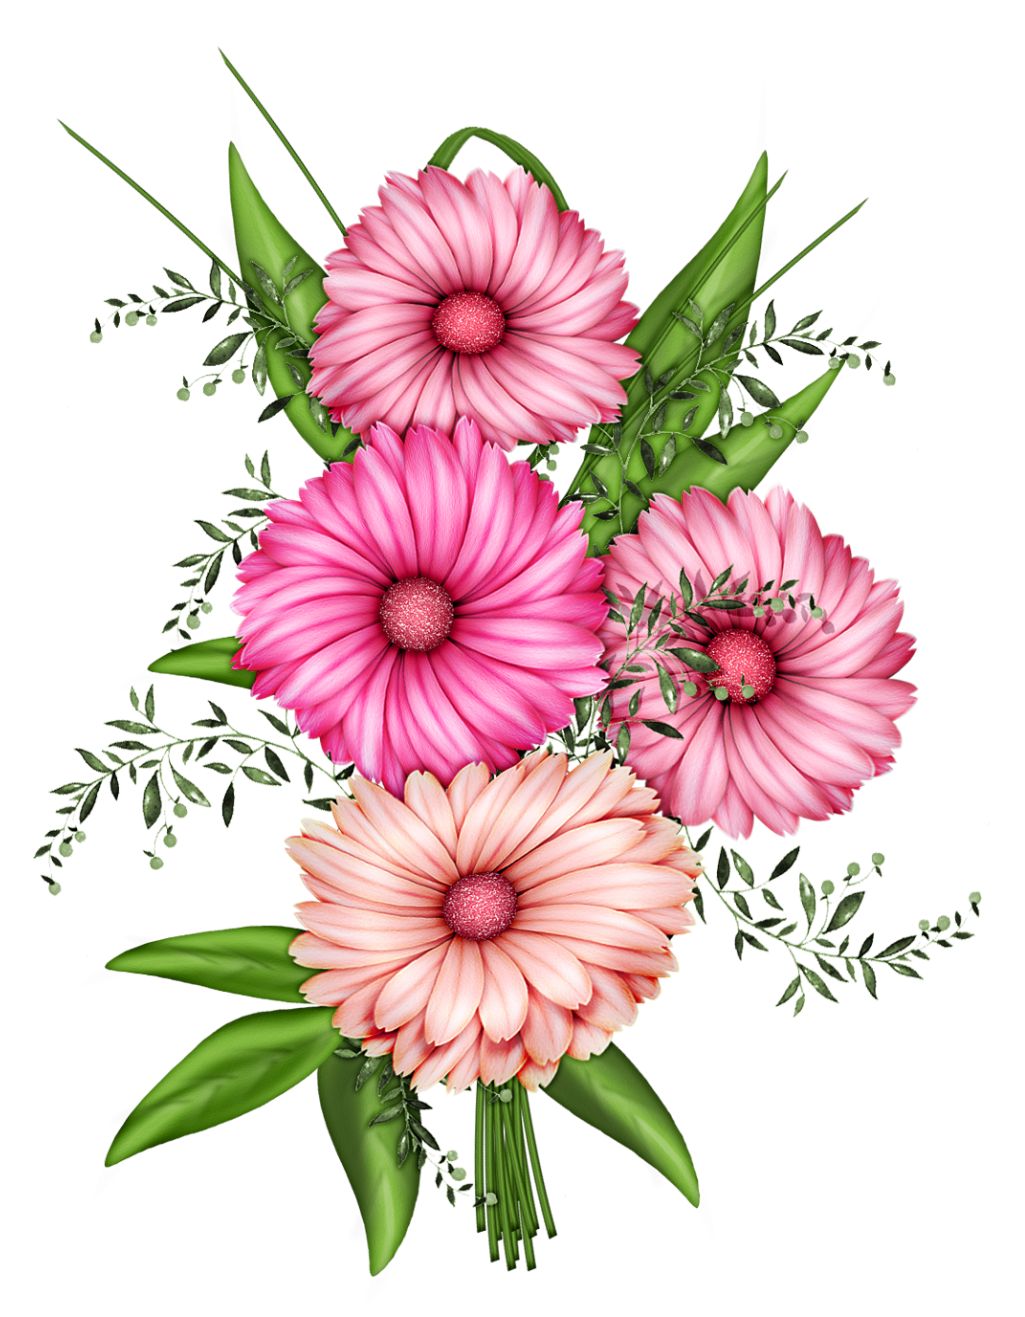 Pin by Digital Design on flowers.